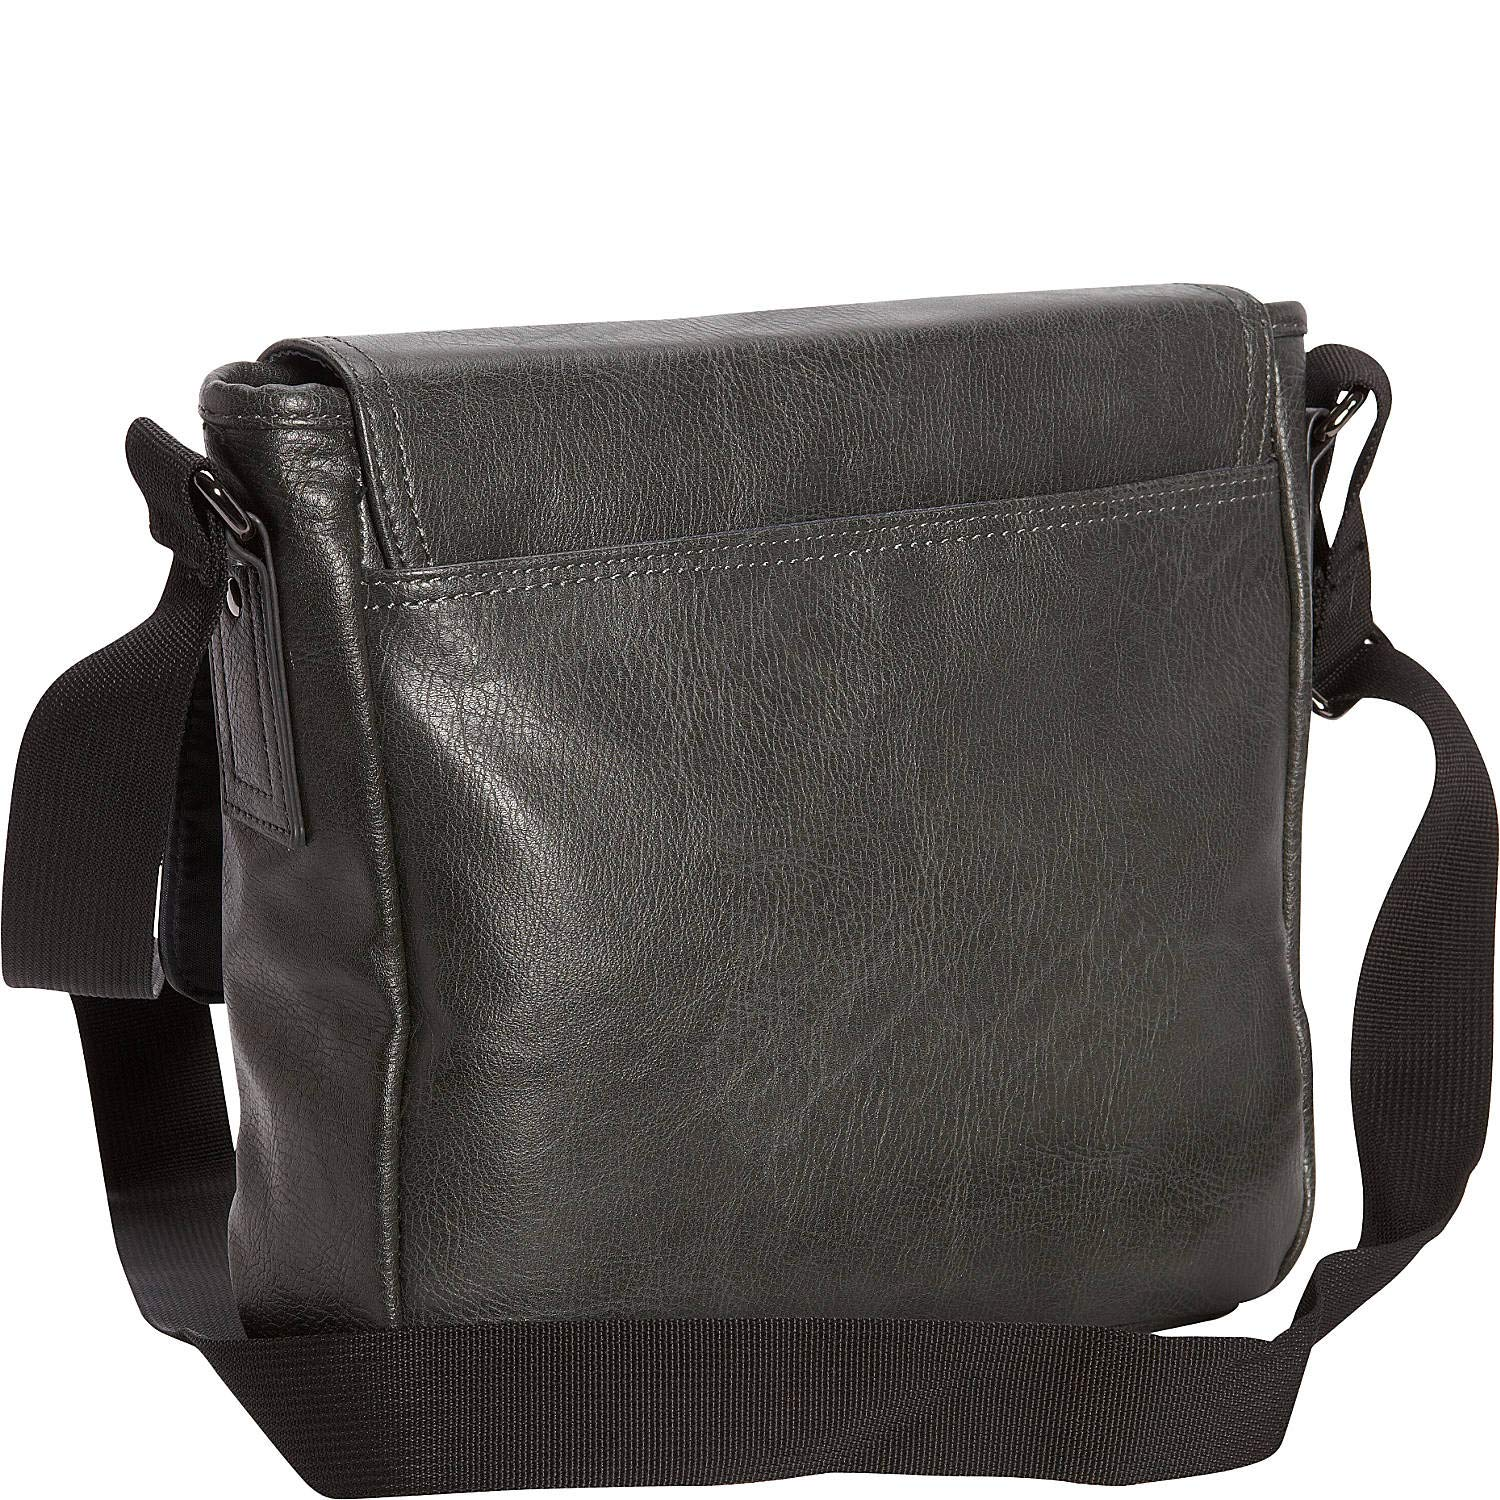 1d7c524bfc2 Kenneth Cole Reaction Men's Buckle-Front Flapover Tablet Case: Amazon.ca:  Clothing & Accessories